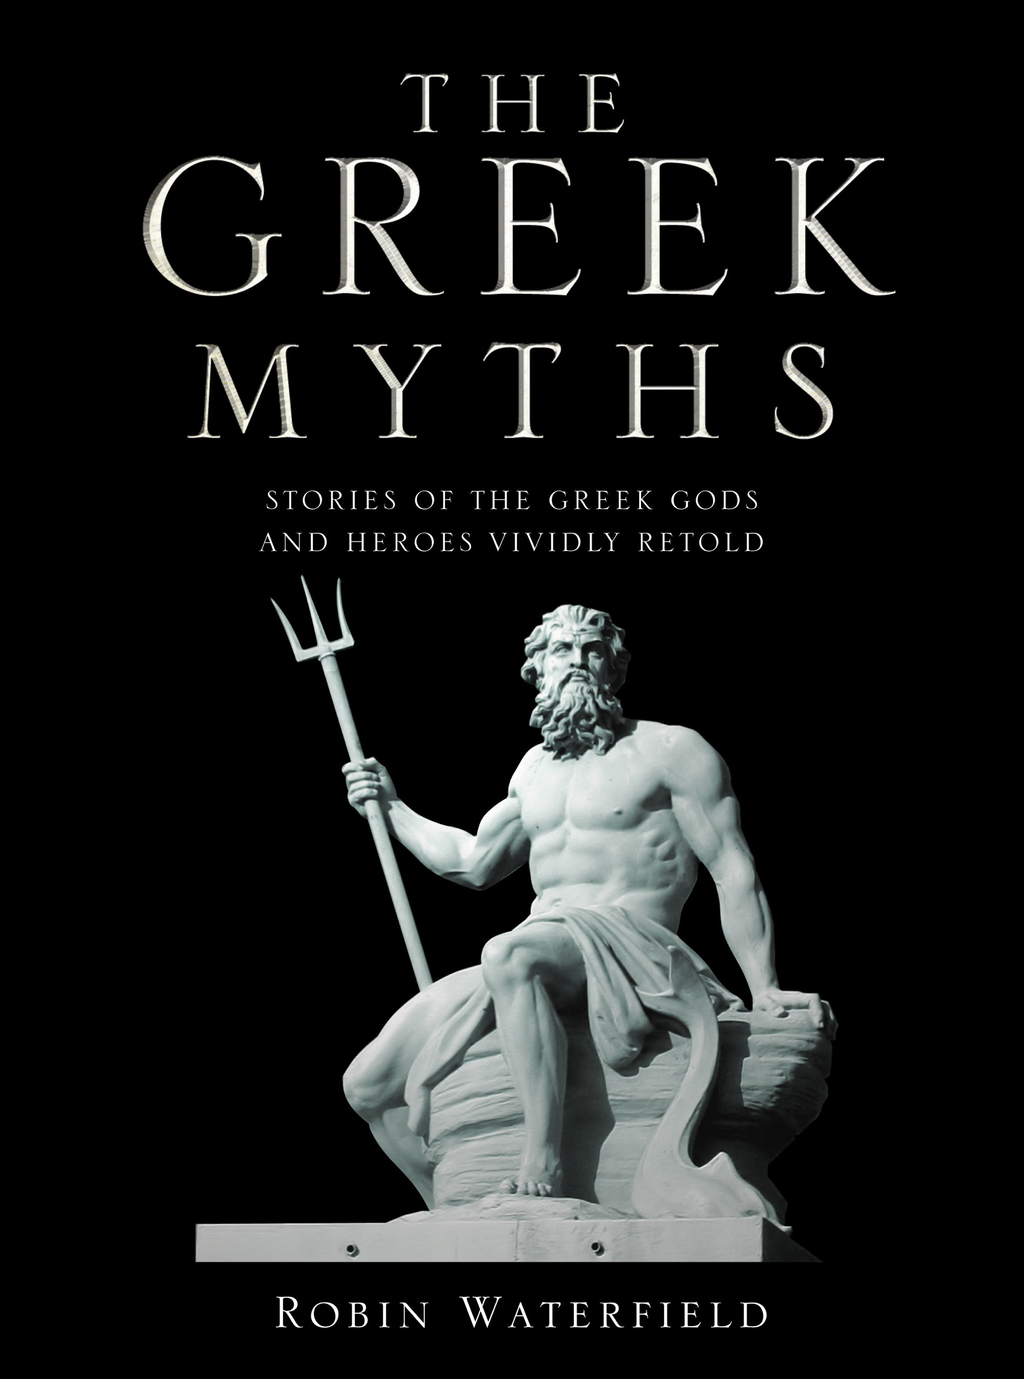 The Greek Myths Stories of the Greek Gods and Heroes Vividly Retold